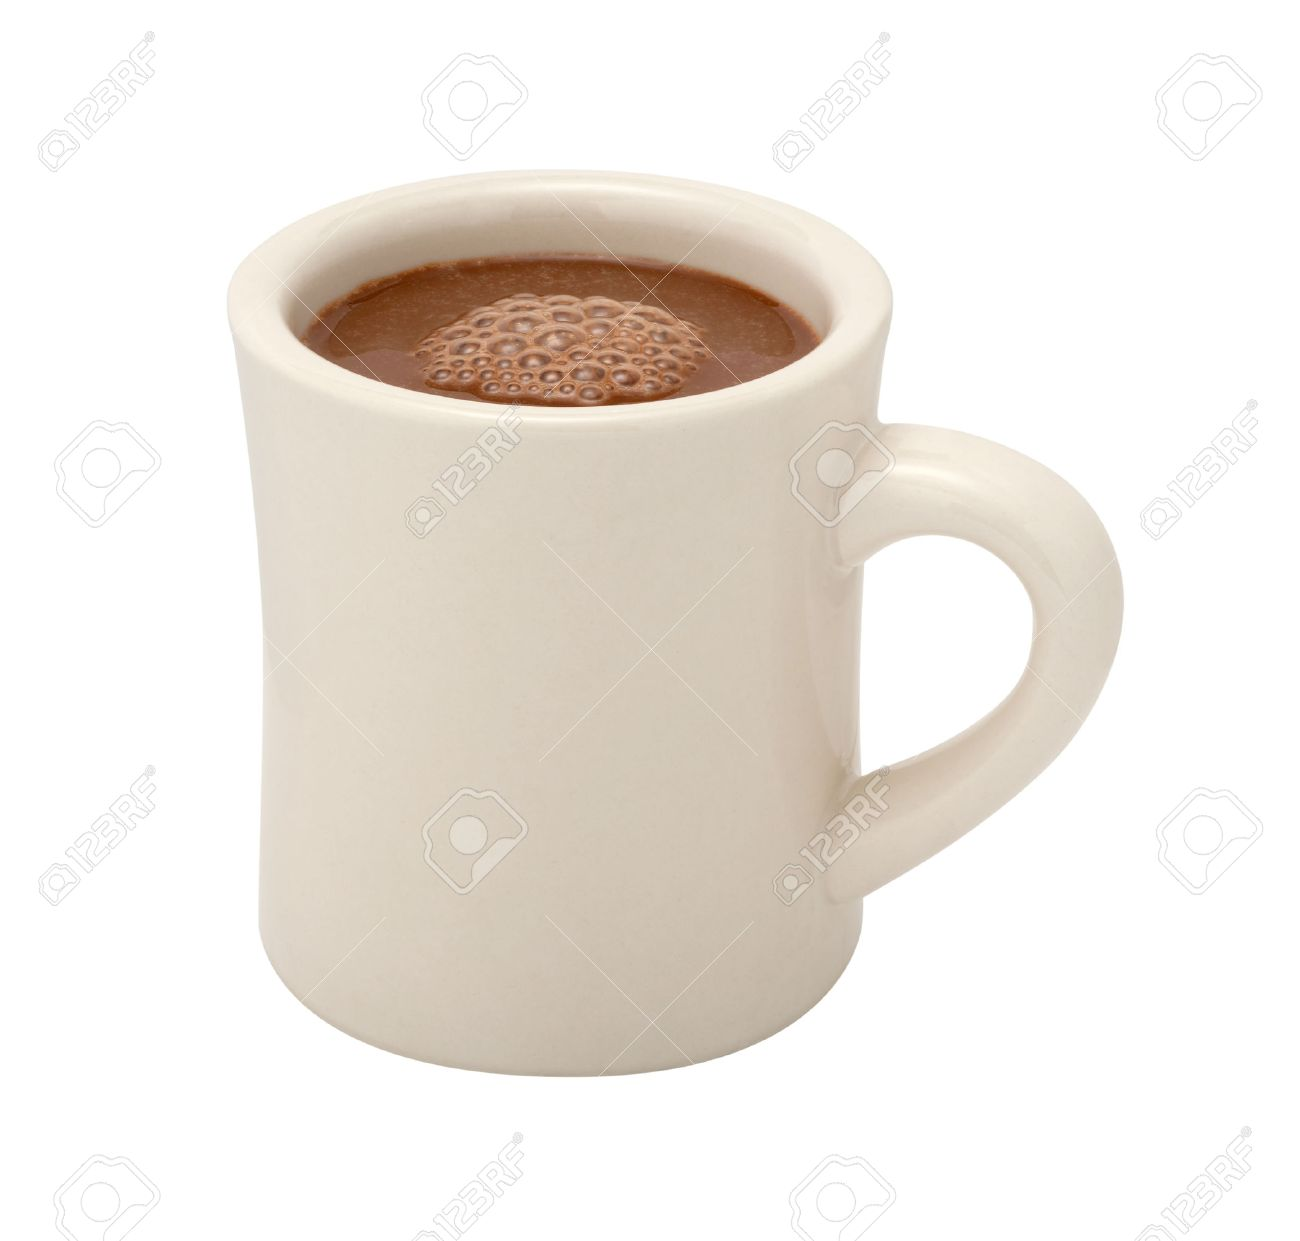 Hot Chocolate In A White Ceramic Mug The Image Is A Cut Out Stock Photo Picture And Royalty Free Image Image 49033581